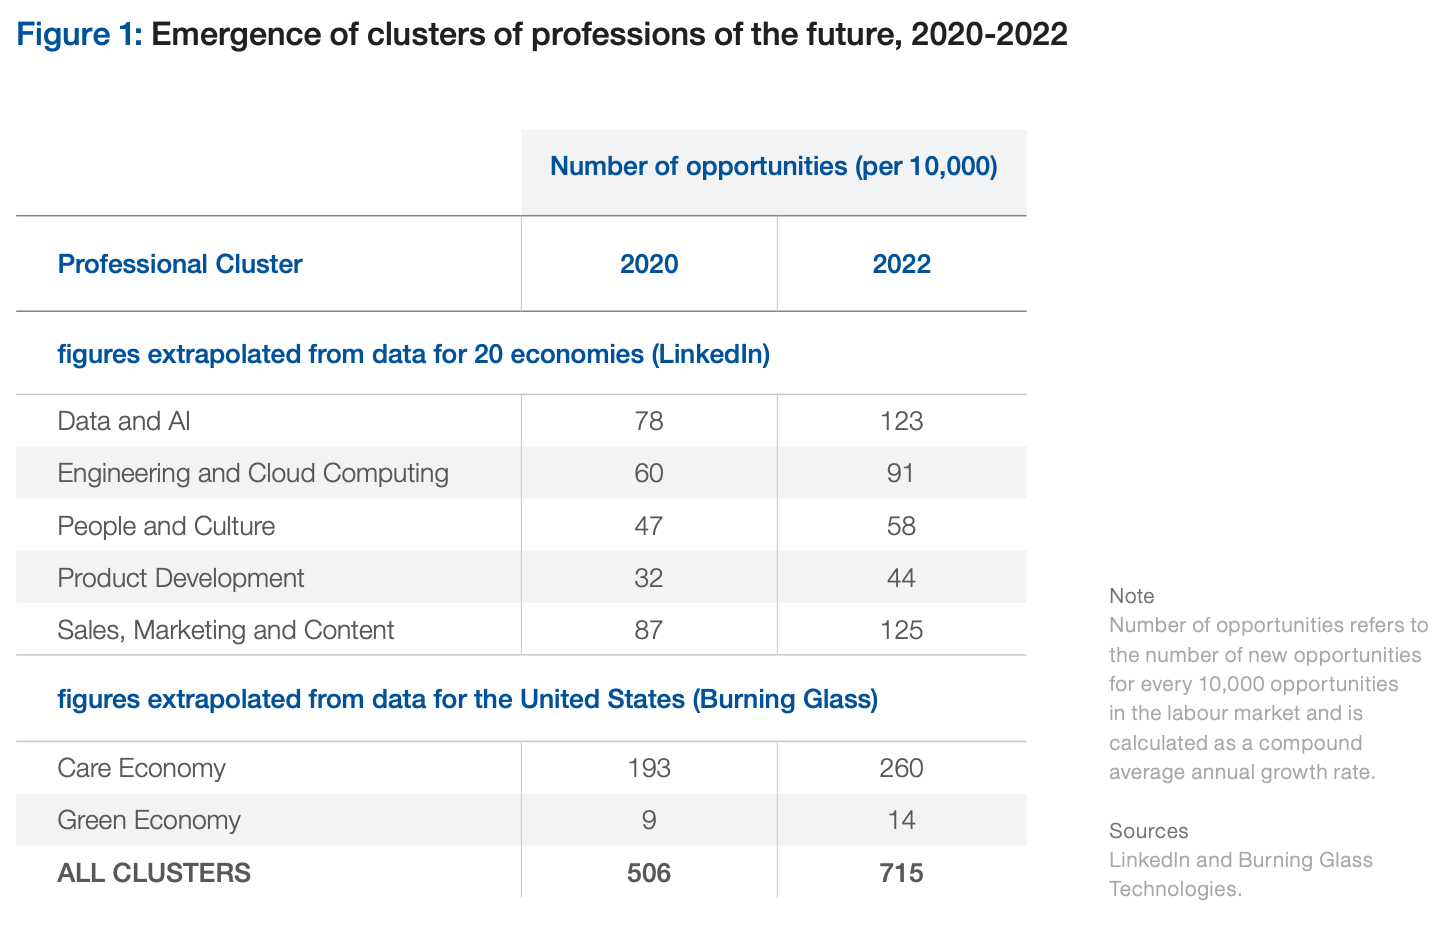 These are some of the fastest-growing professions of the future.